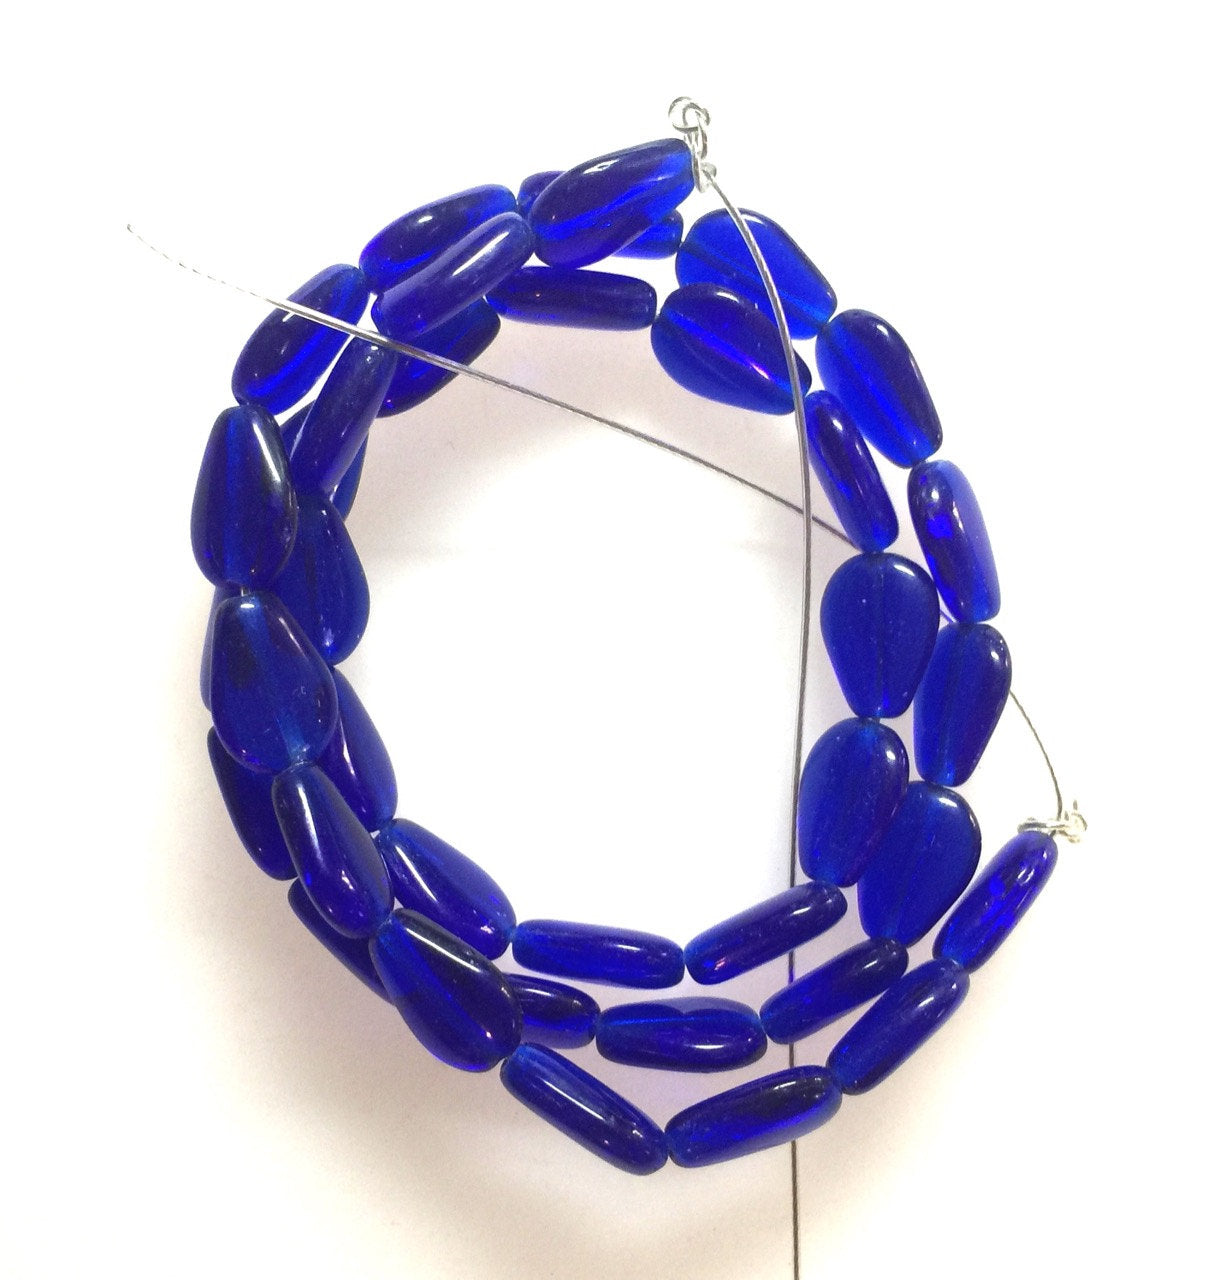 Cobalt Glass Flat Small Drop Shaped Beads Czech Glass Strand